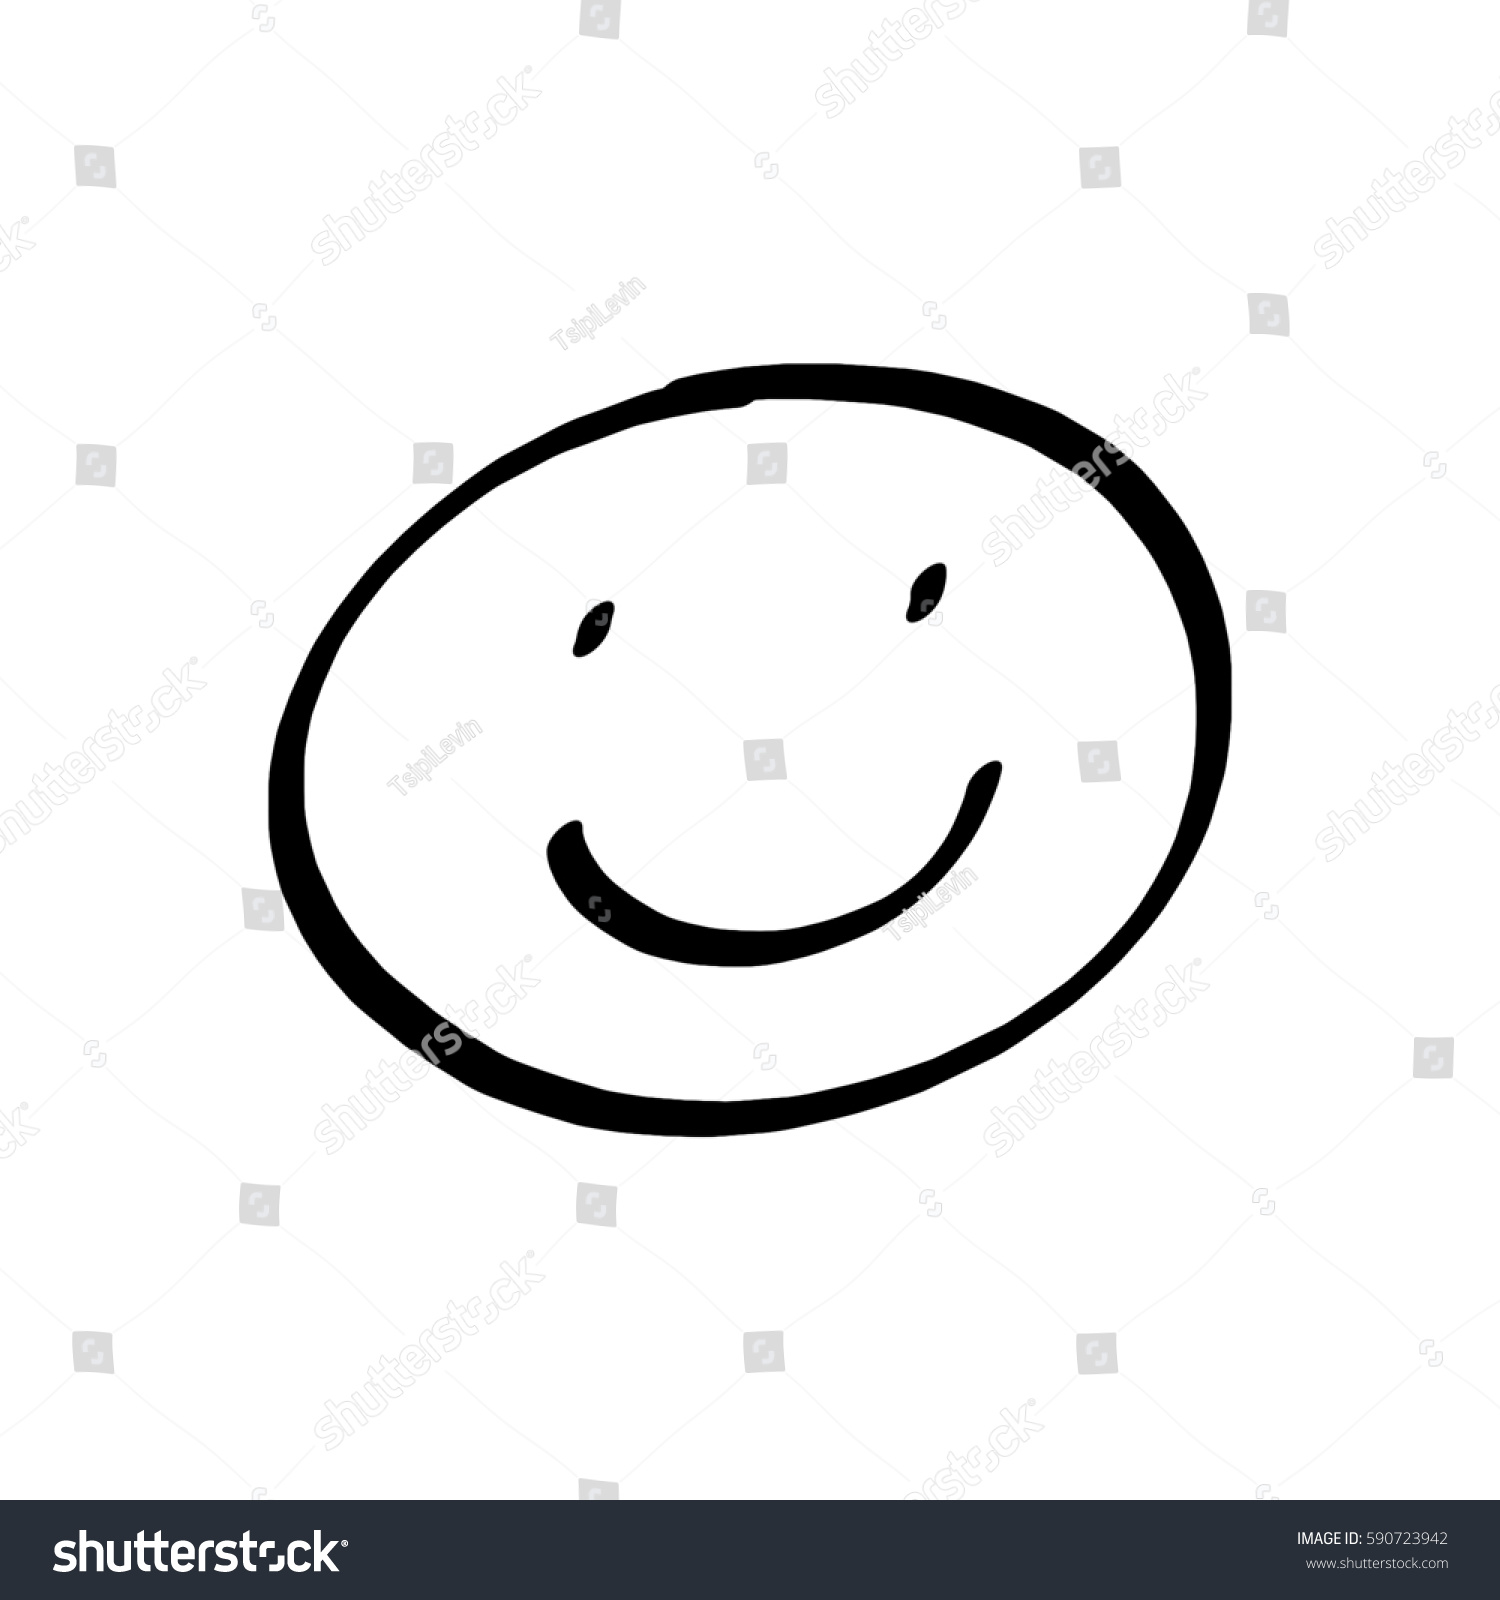 How to draw a smiley face